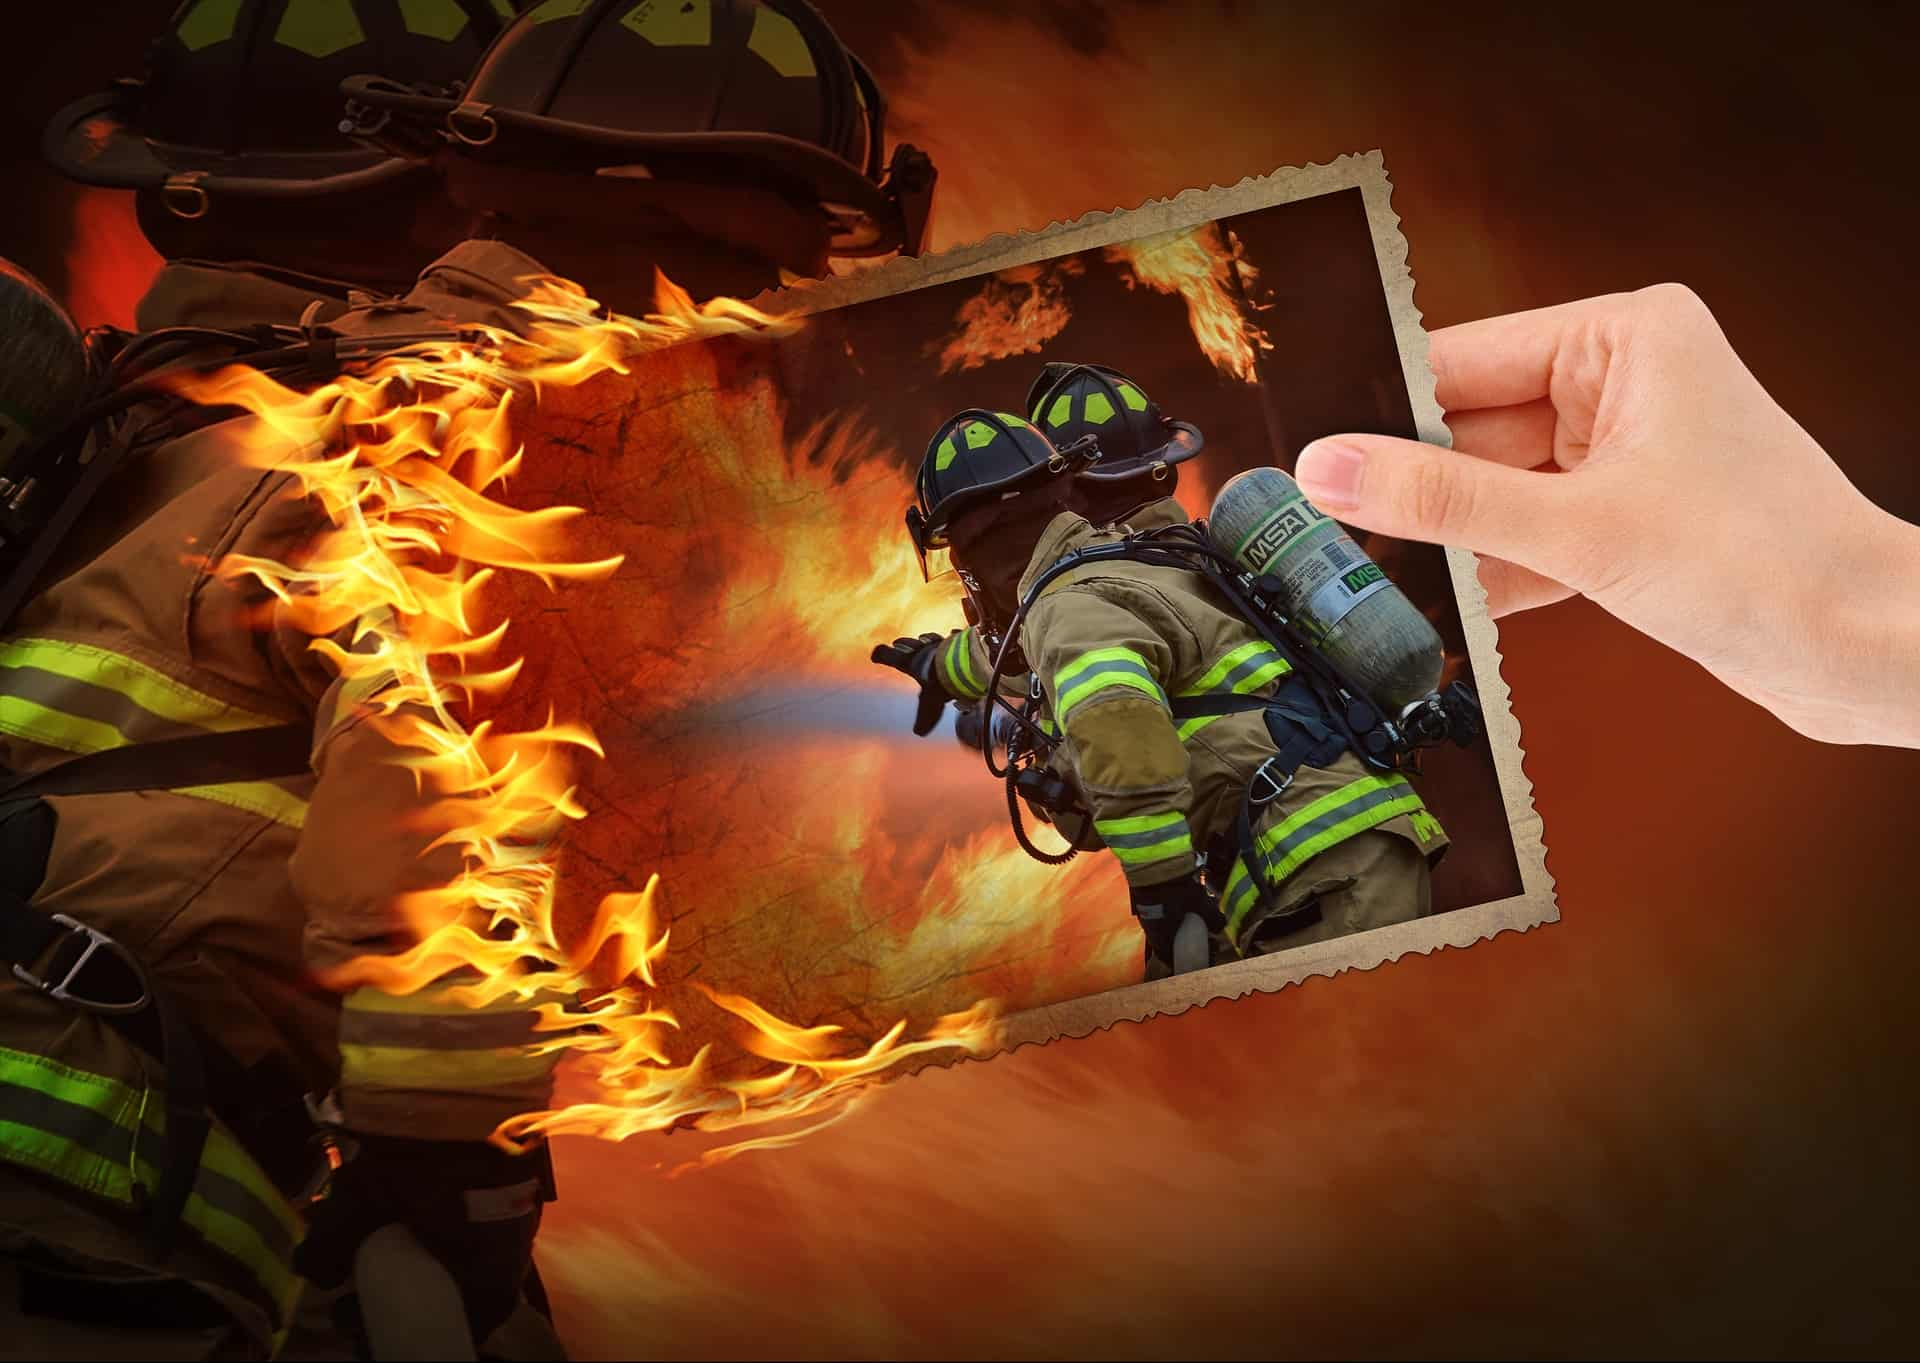 Is there a difference between fire protection and fire suppression?